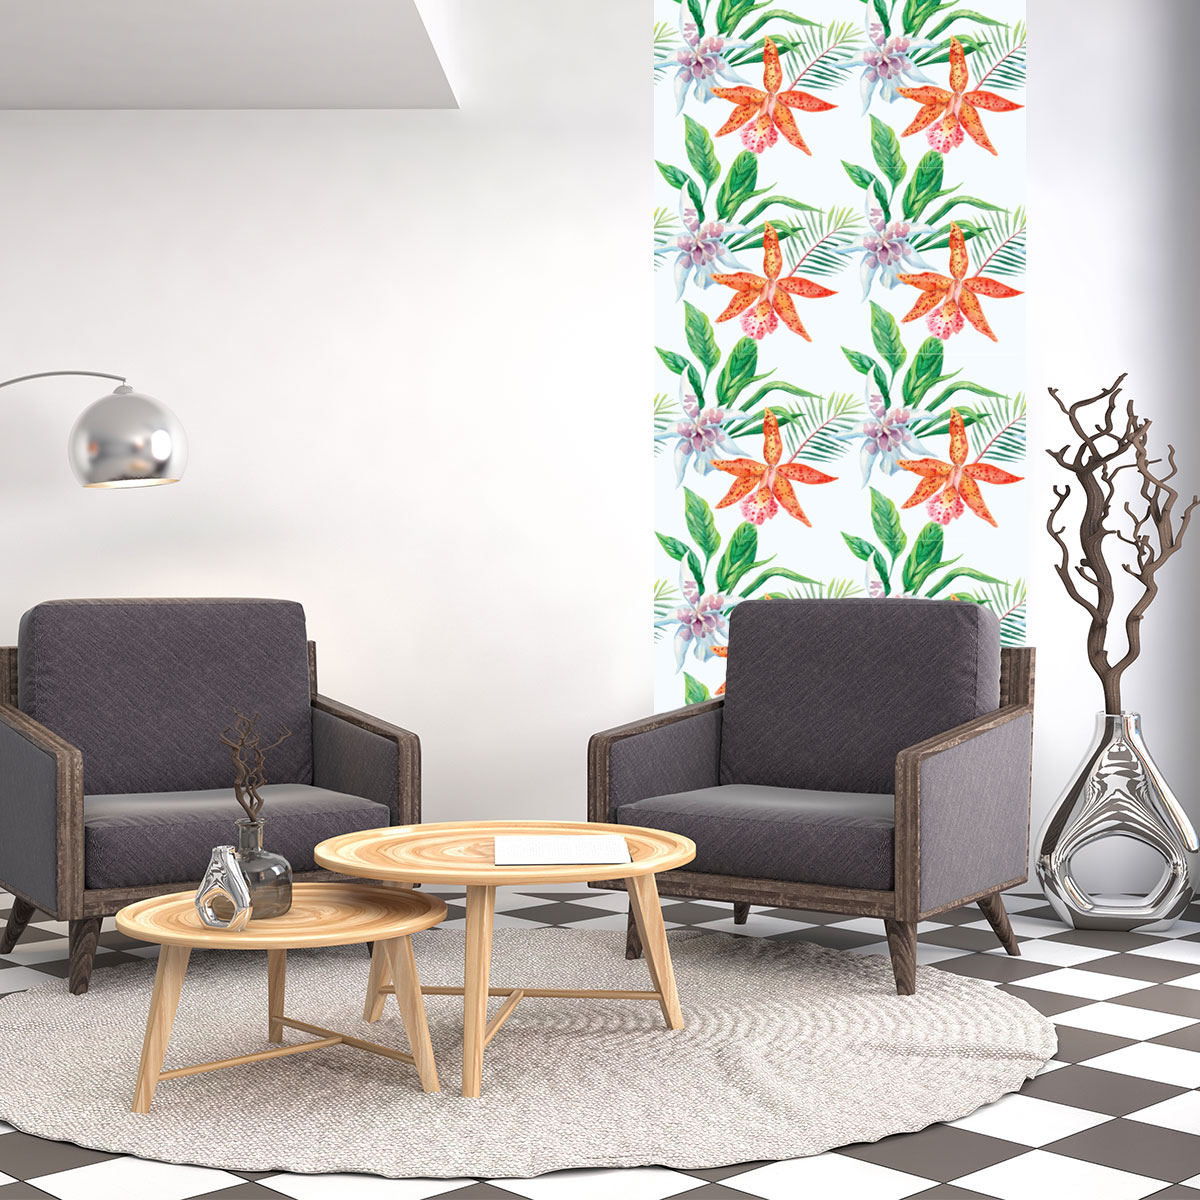 sticker papier peint tropical les orchid es nature fleurs ambiance sticker. Black Bedroom Furniture Sets. Home Design Ideas